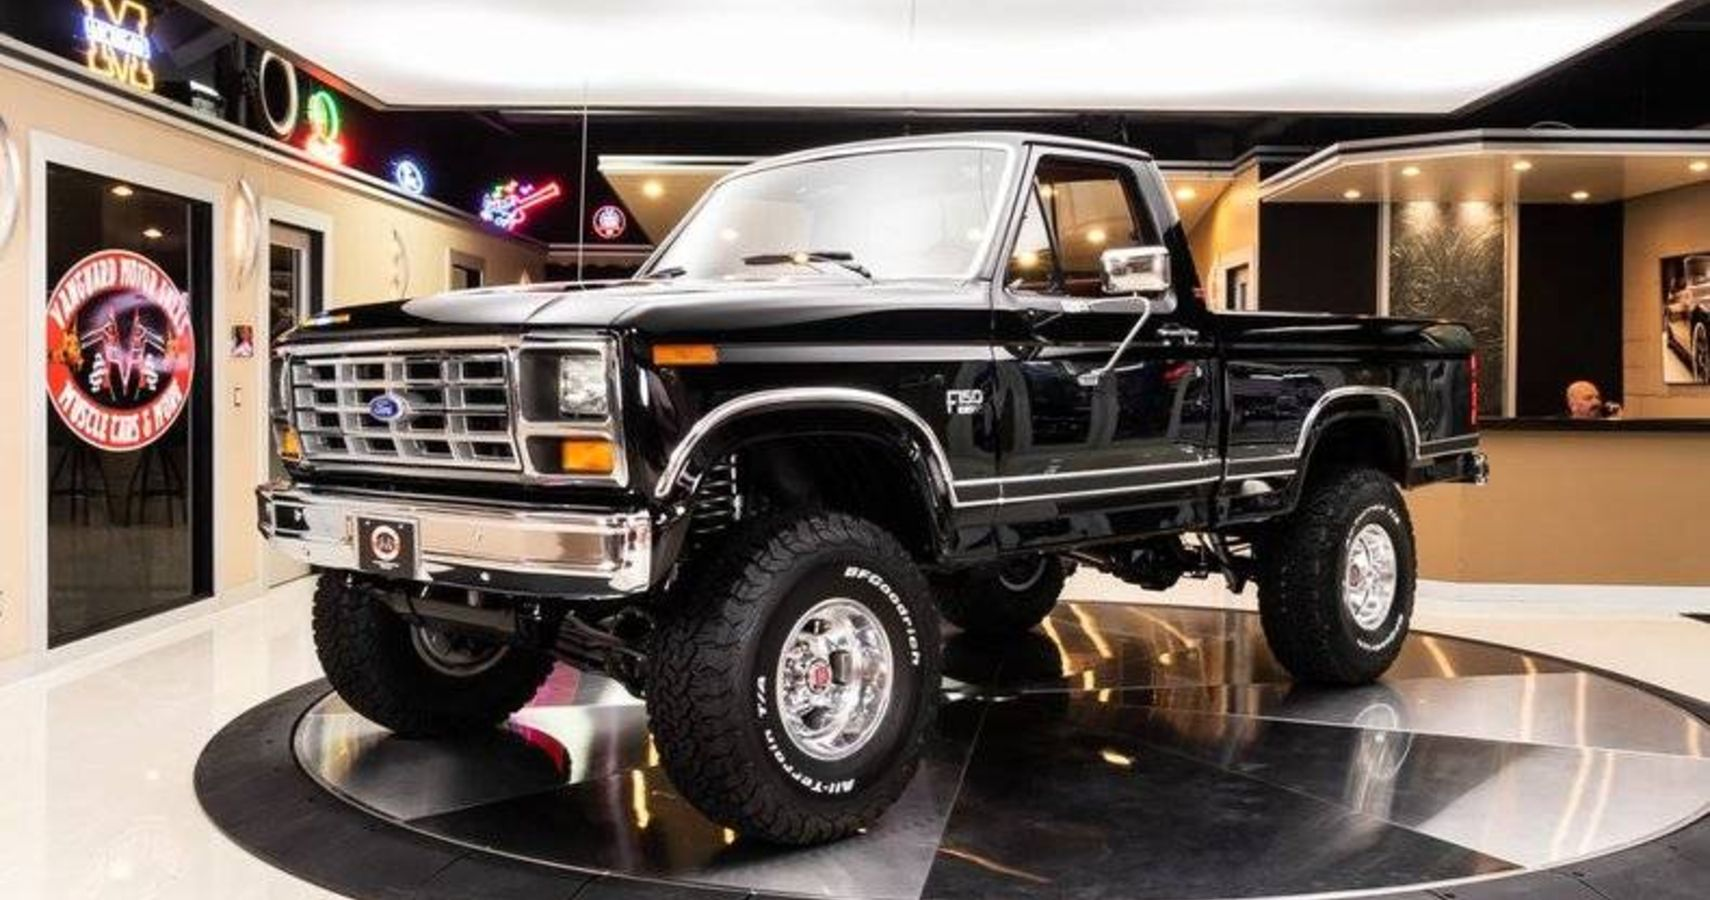 Super Low Mileage 1986 Ford F150 Xlt 4x4 Is Lifted Ready For Action